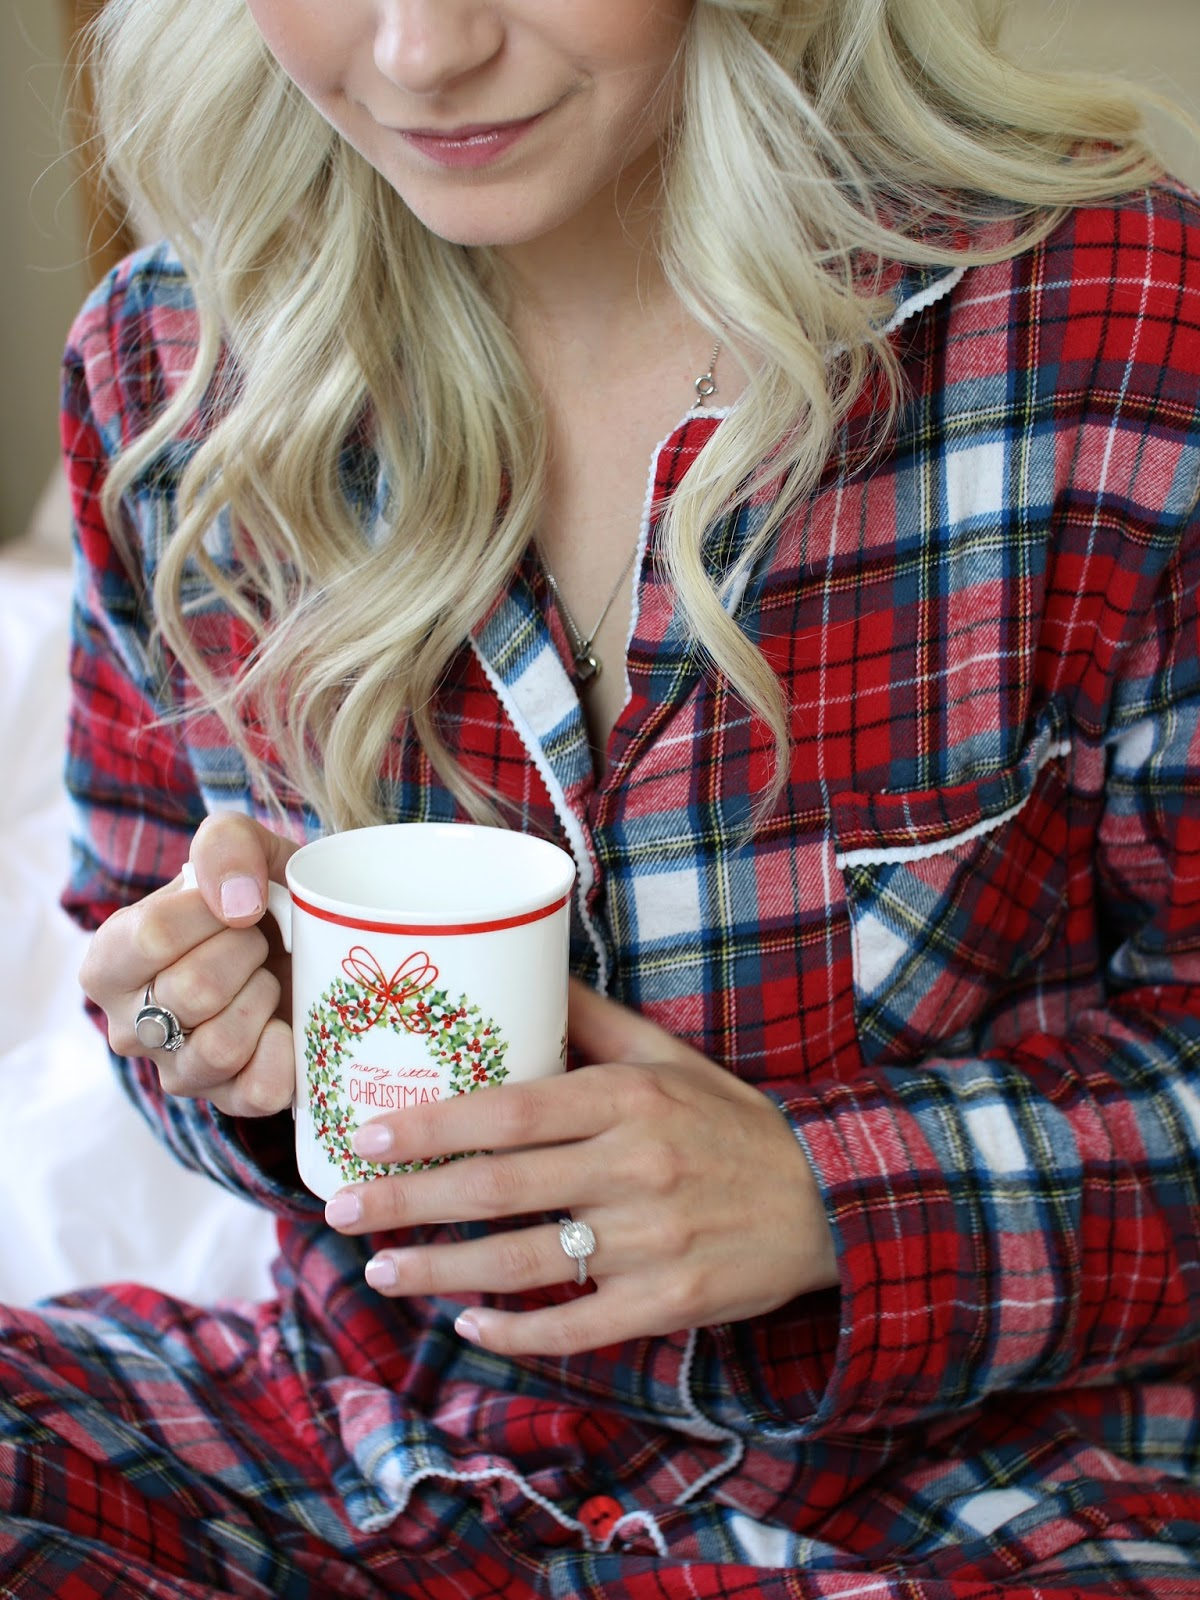 blonde women cozy in red and green PJ's with a cup of hot coffee